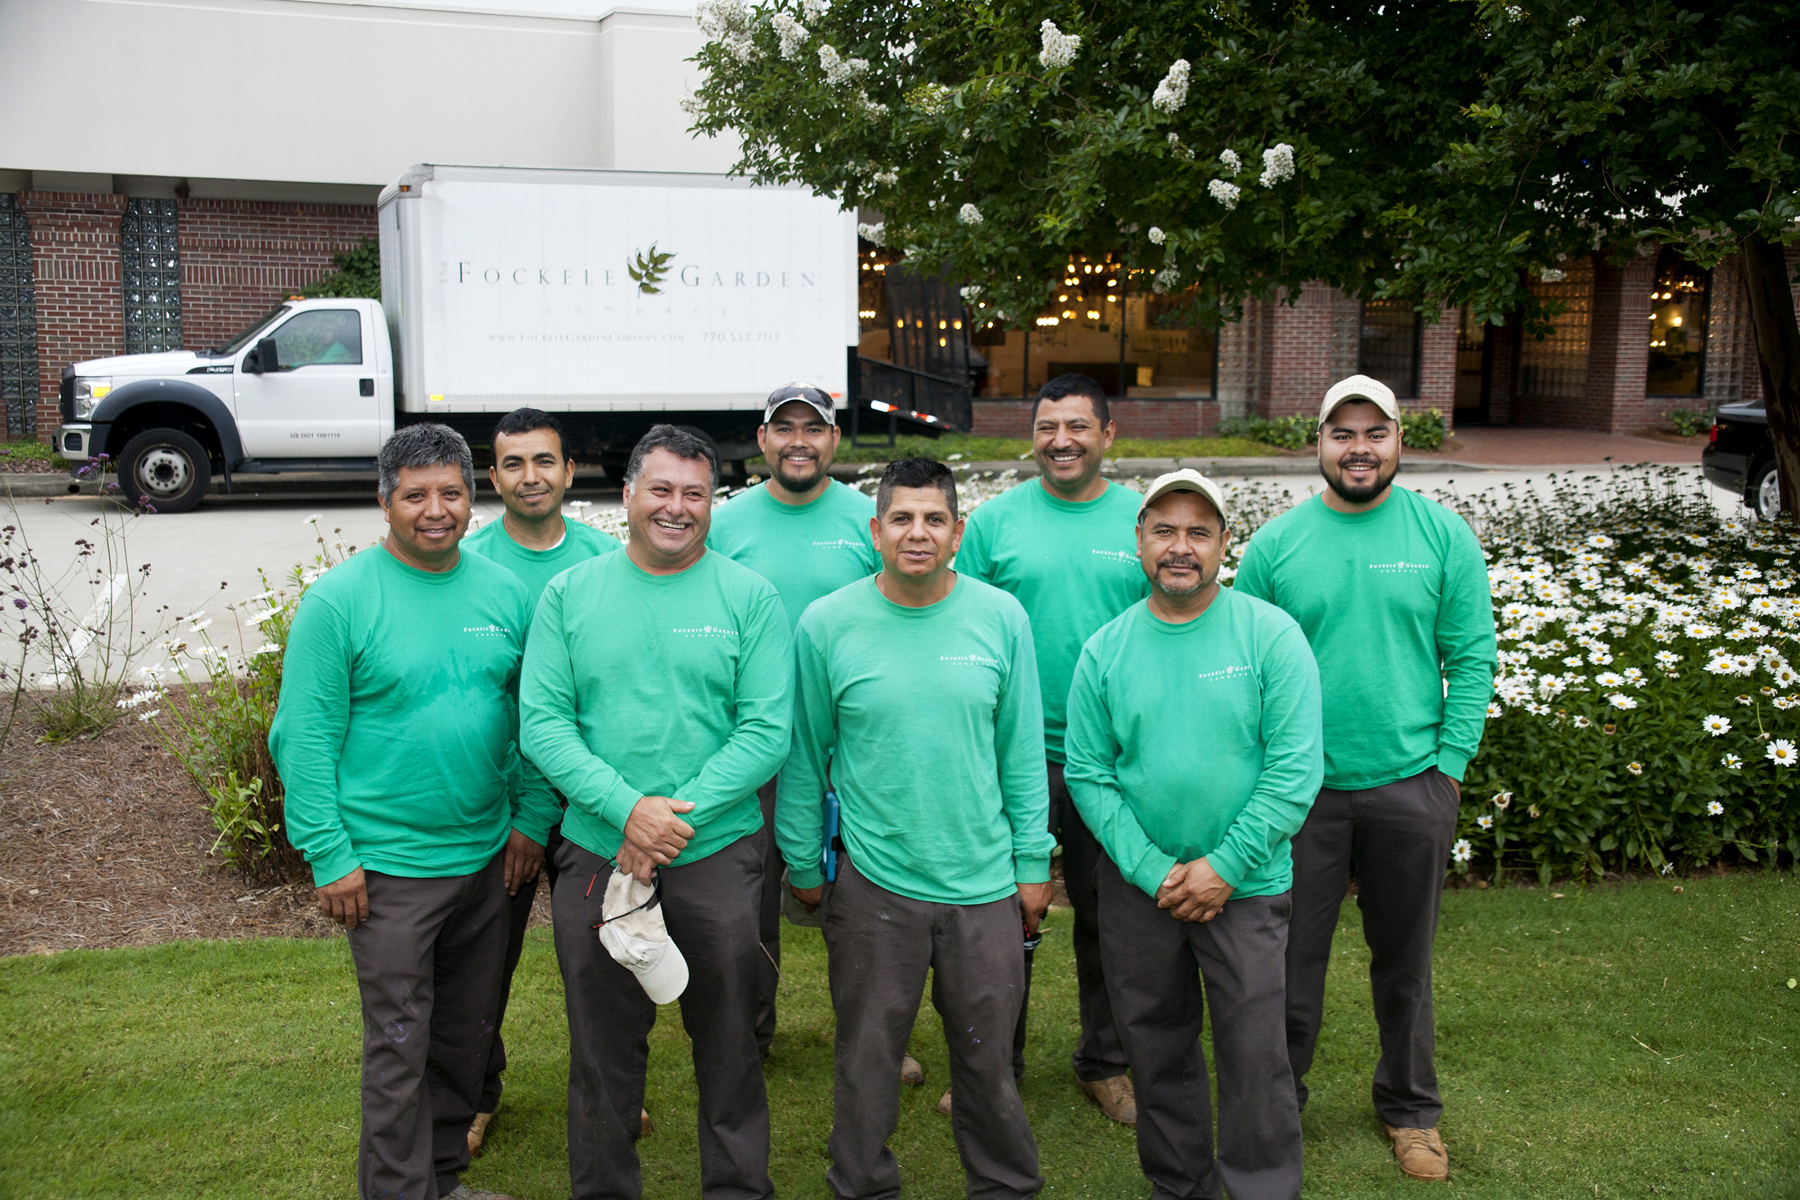 Fockele Garden Company Professional Landscaping Installation Team, includes commercial landscaping contractors and modern residential landscape designers.